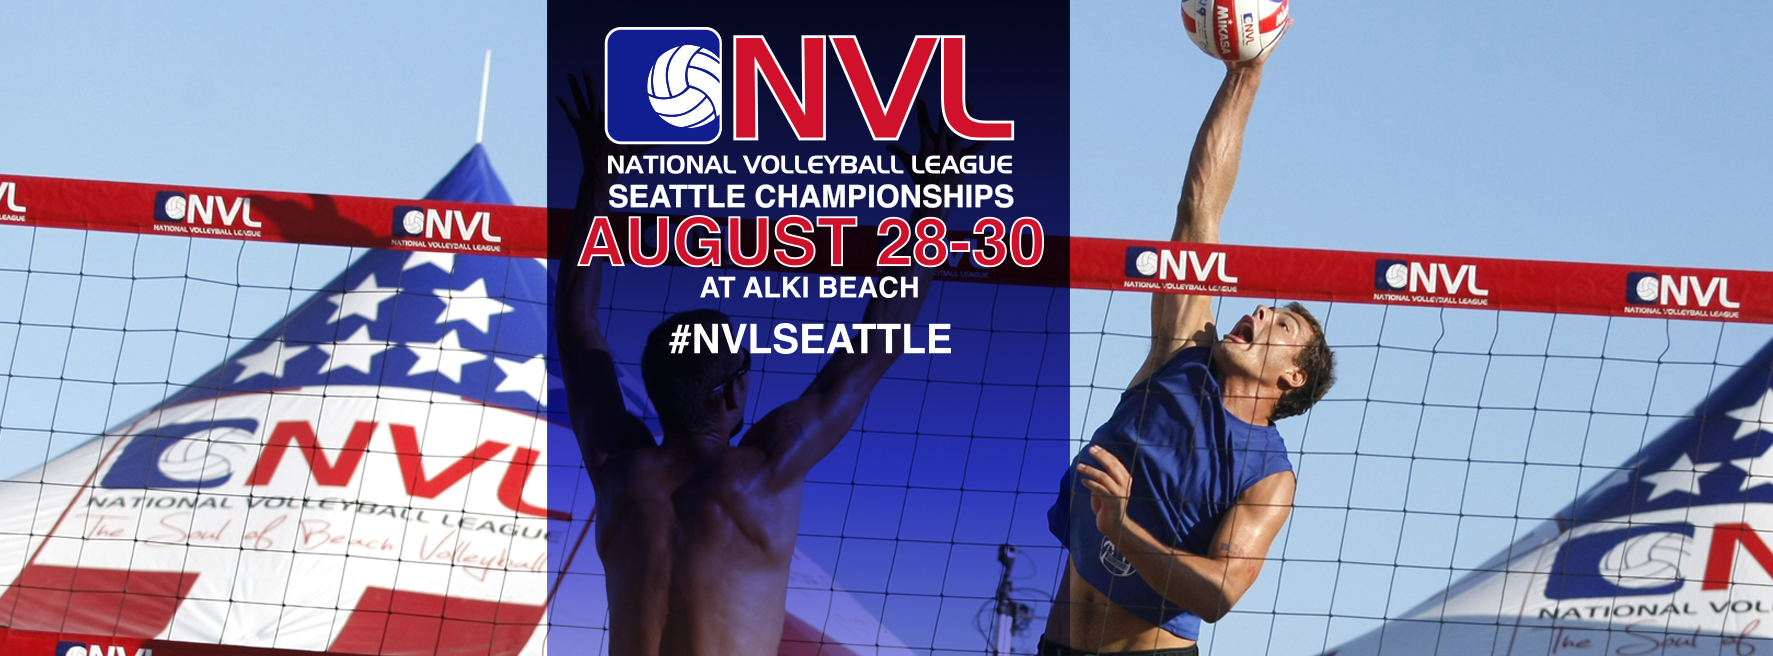 National Volleyball League Pros Compete for $75,000 at the Seattle Championships on August 28 – 30